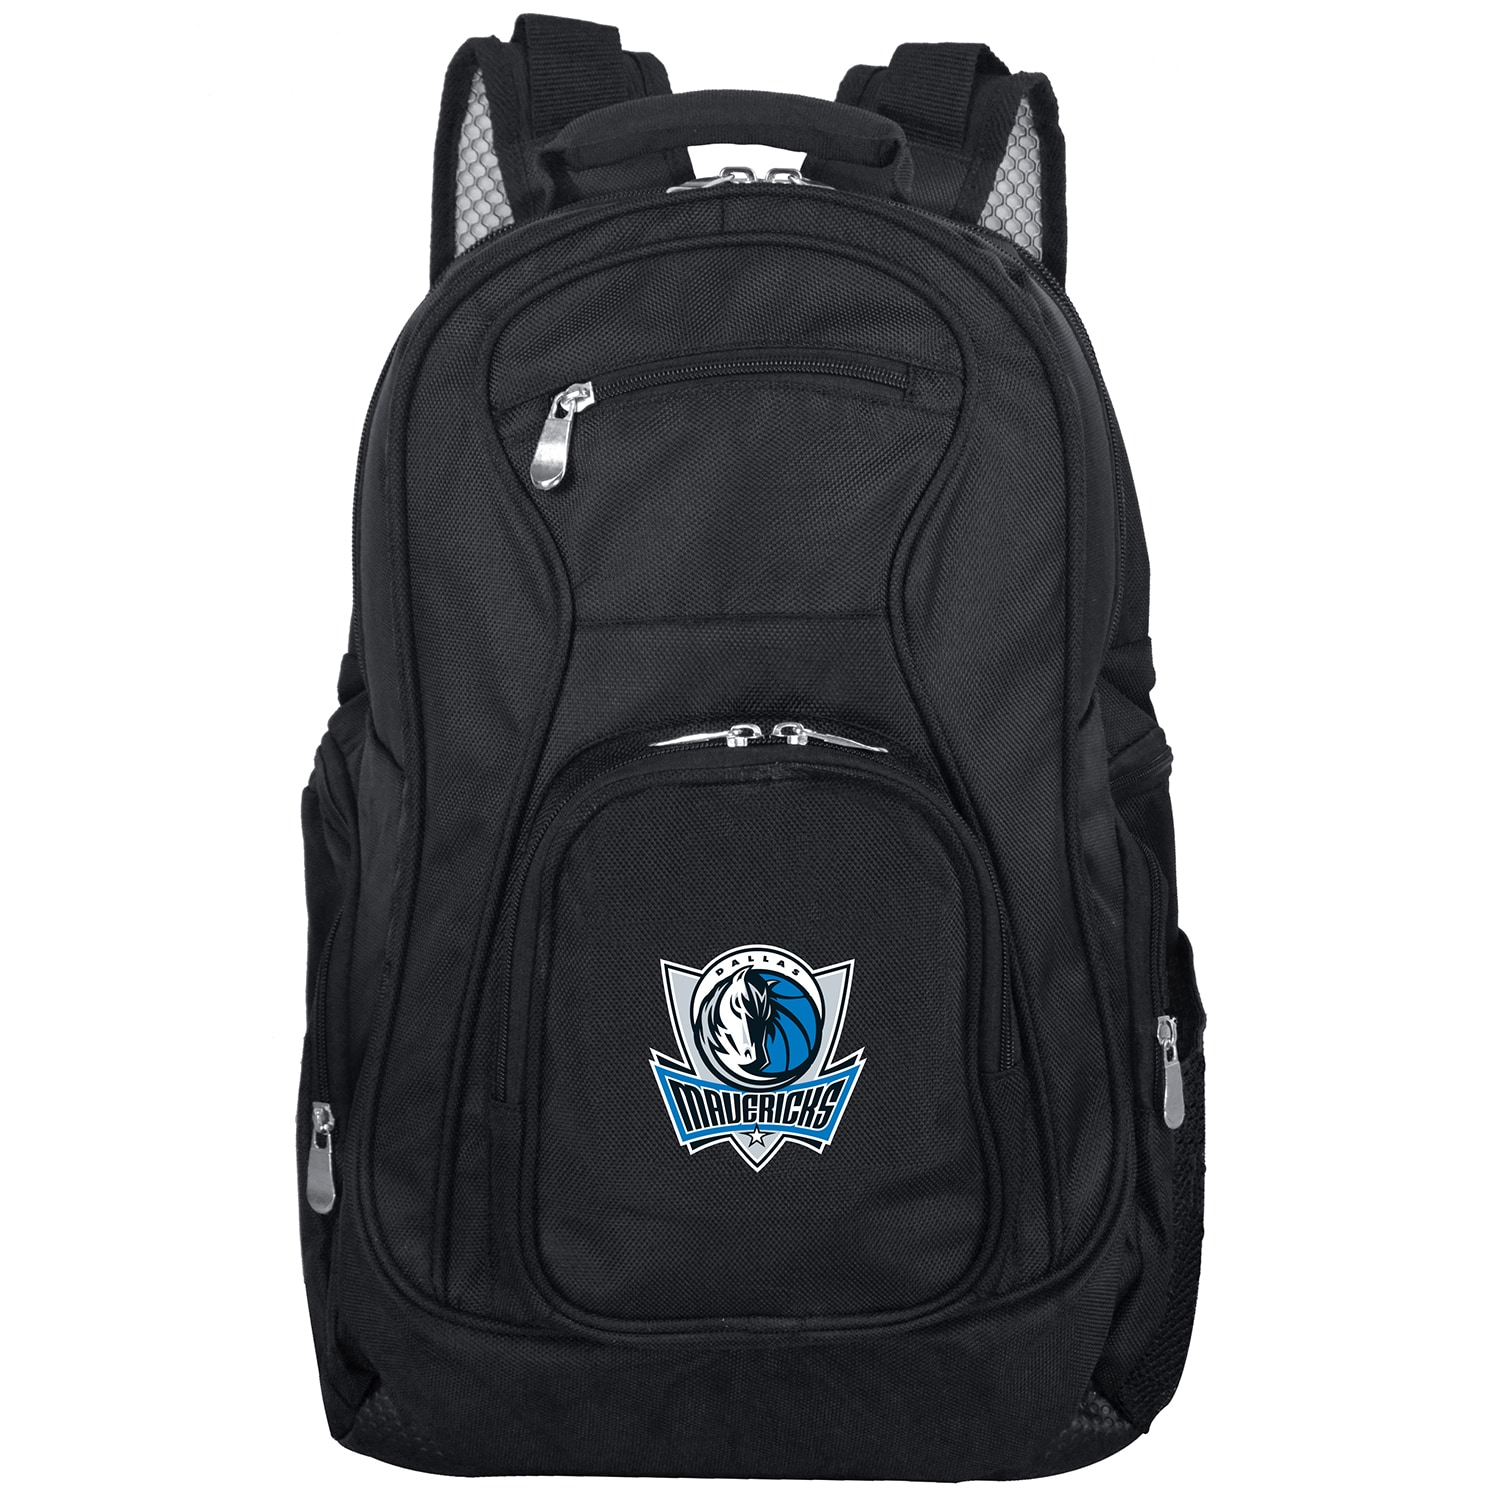 "Dallas Mavericks 19"" Laptop Travel Backpack - Black"